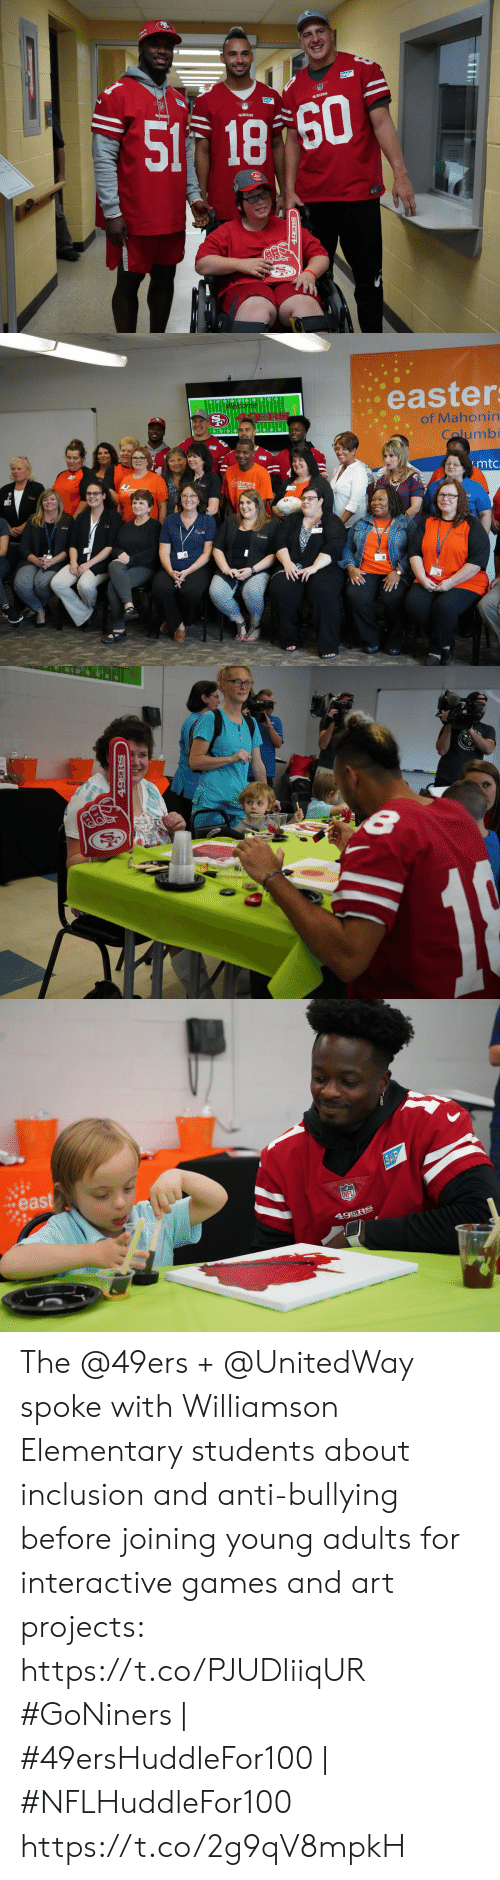 49er: SAP  49ER  49ERS  S1 18 60  49ERS  19ERS   easter  Welcome  of Mahonin  Calumbi  .mtc.   49ERS   east  SAP  NFL  49ERS The @49ers + @UnitedWay spoke with Williamson Elementary students about inclusion and anti-bullying before joining young adults for interactive games and art projects: https://t.co/PJUDIiiqUR  #GoNiners | #49ersHuddleFor100 | #NFLHuddleFor100 https://t.co/2g9qV8mpkH